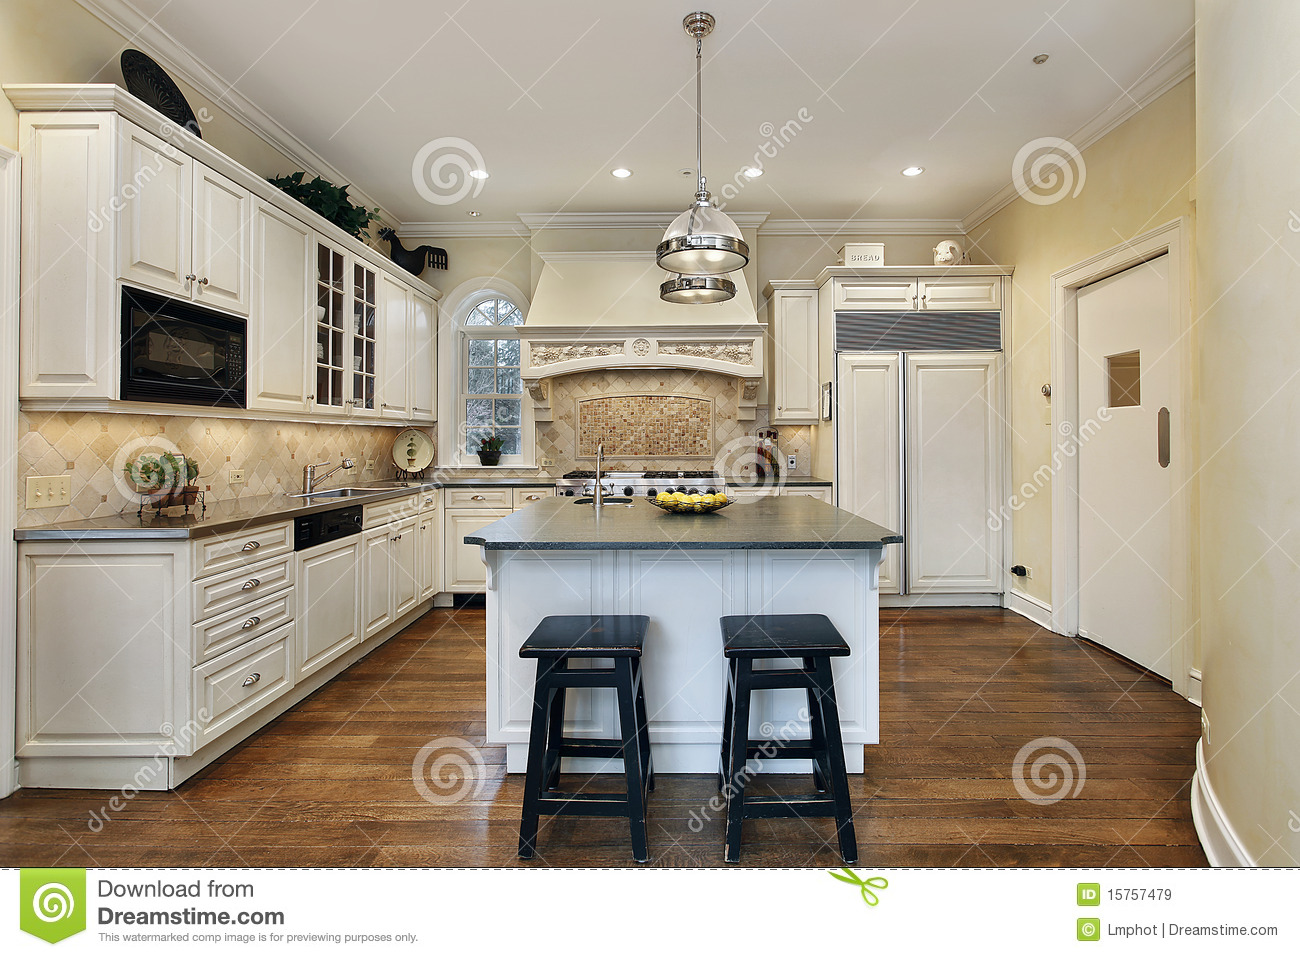 kitchen with decorative oven backsplash royalty free stock